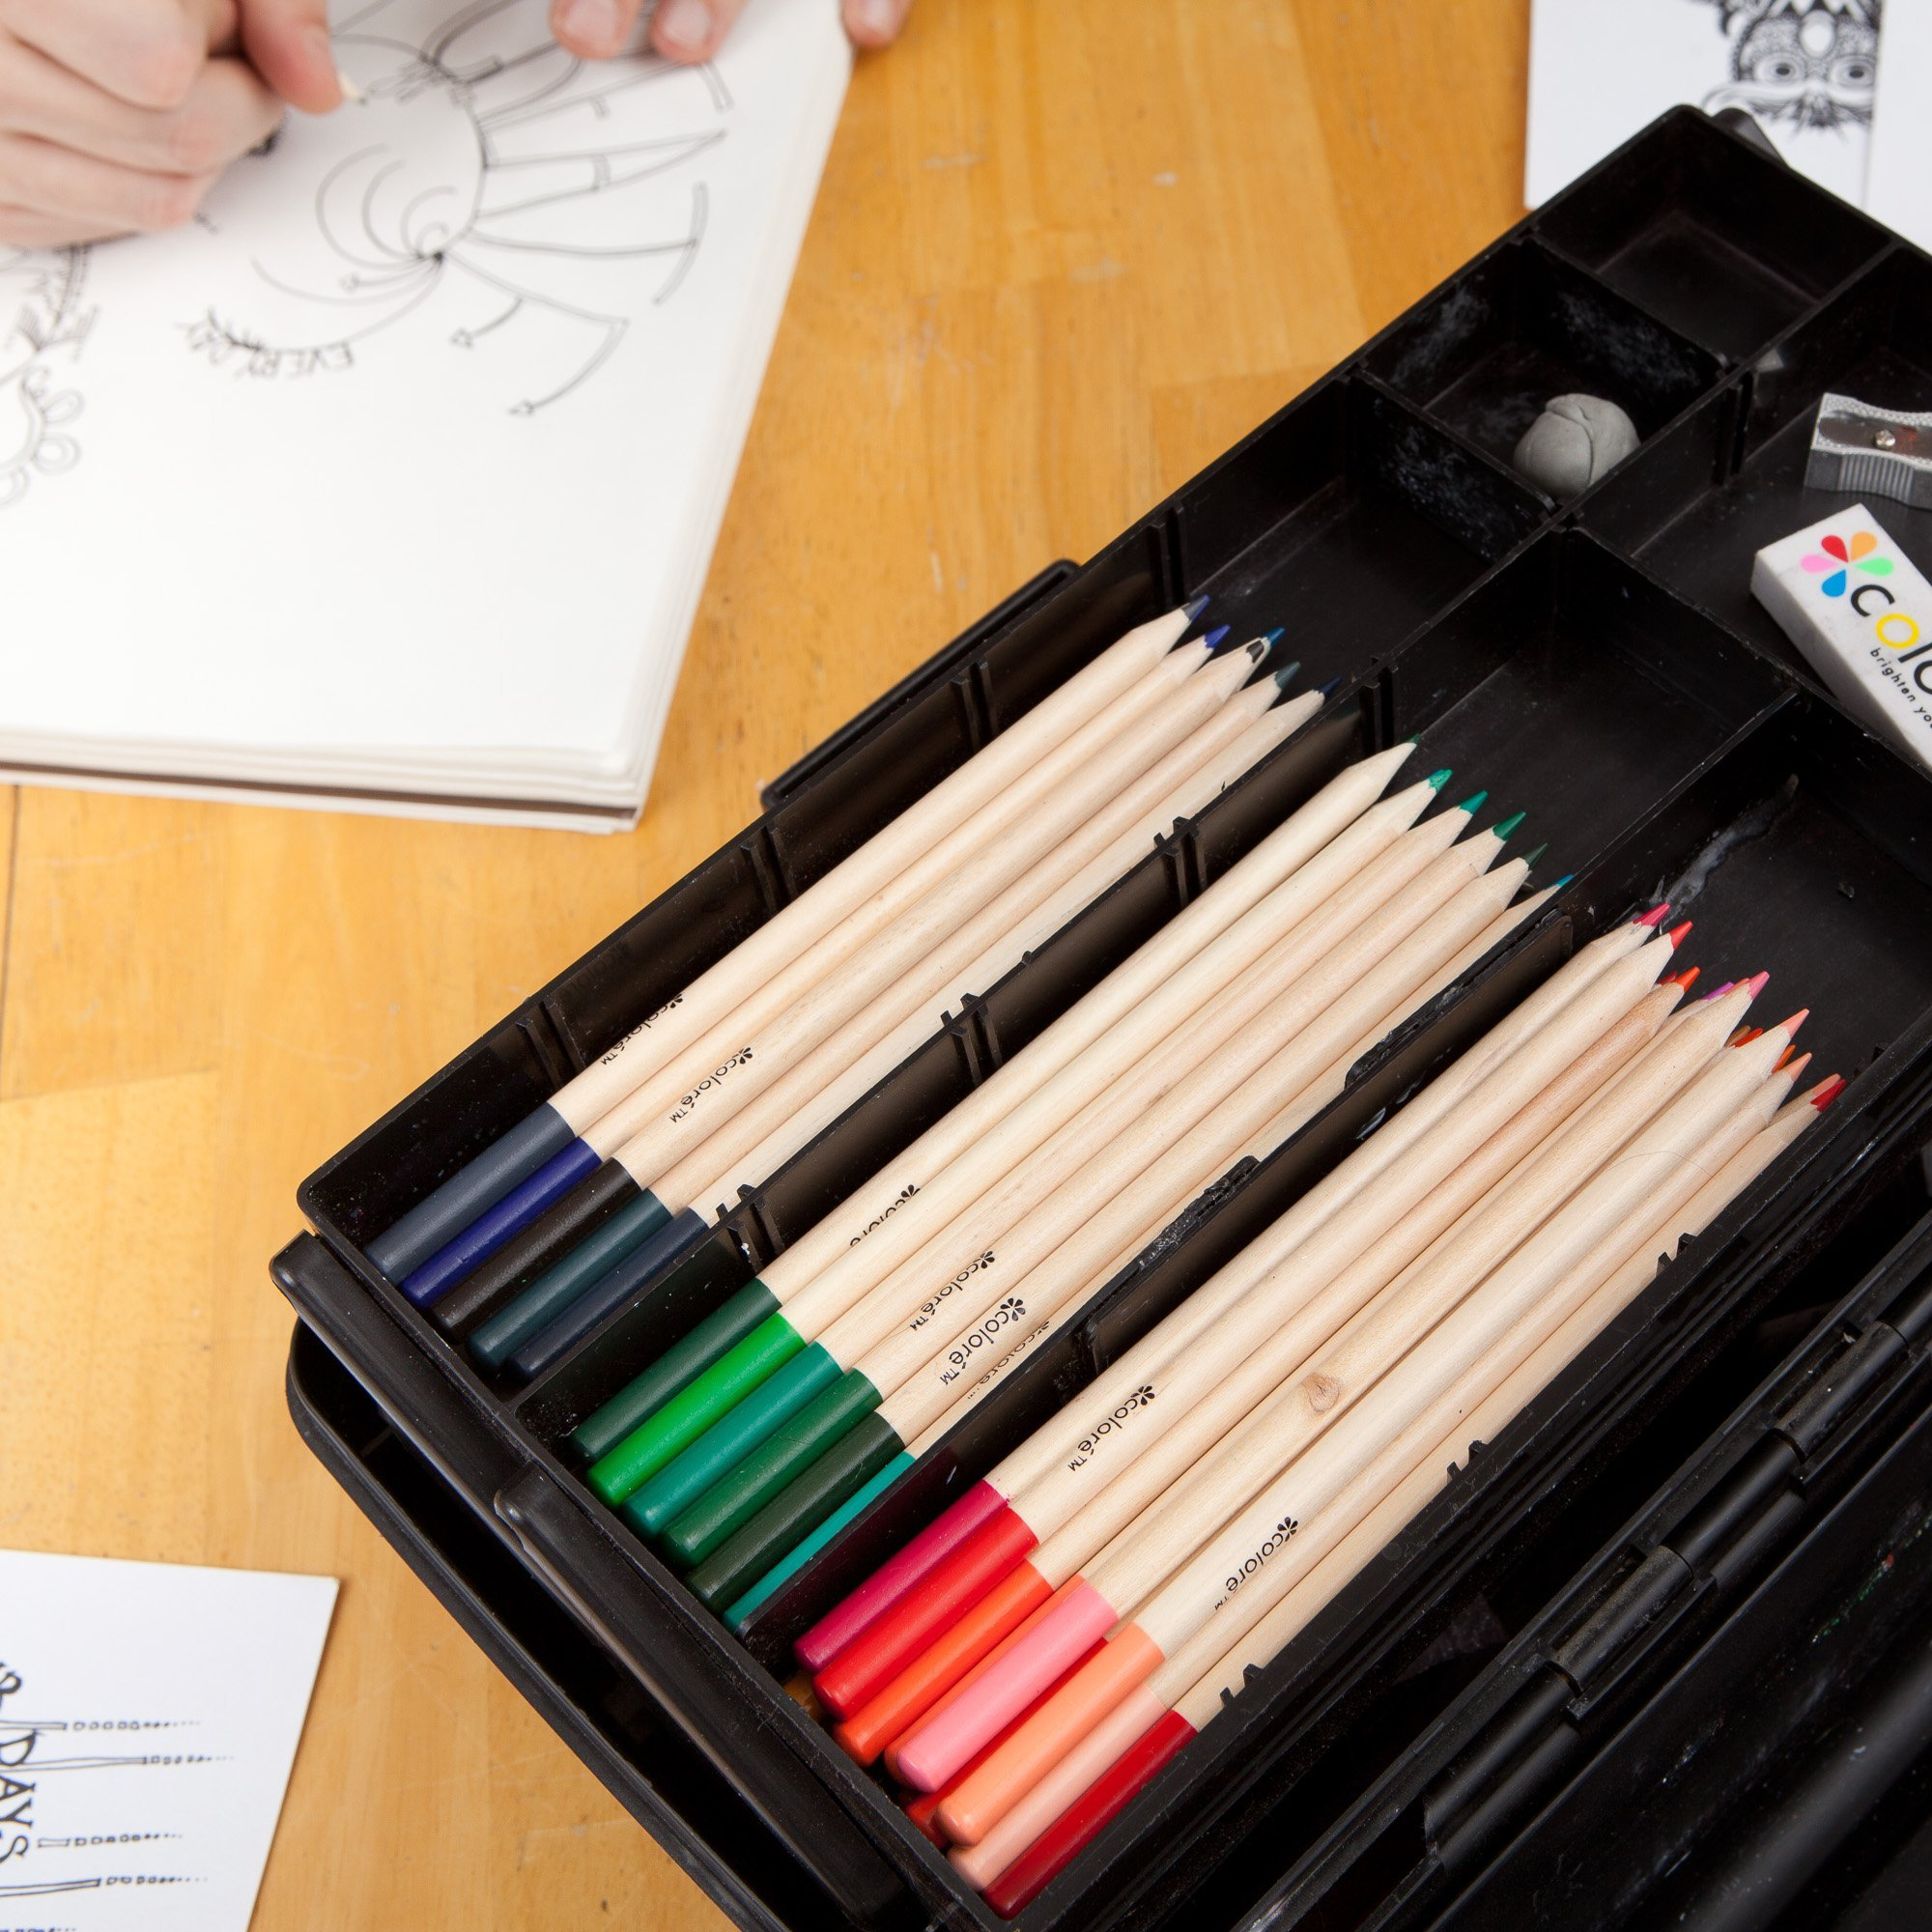 Colored Pencils Pre-Sharpened Colored Pencil Set with Eraser and Sharpener (60-Piece) by Colored Pencils (Image #9)